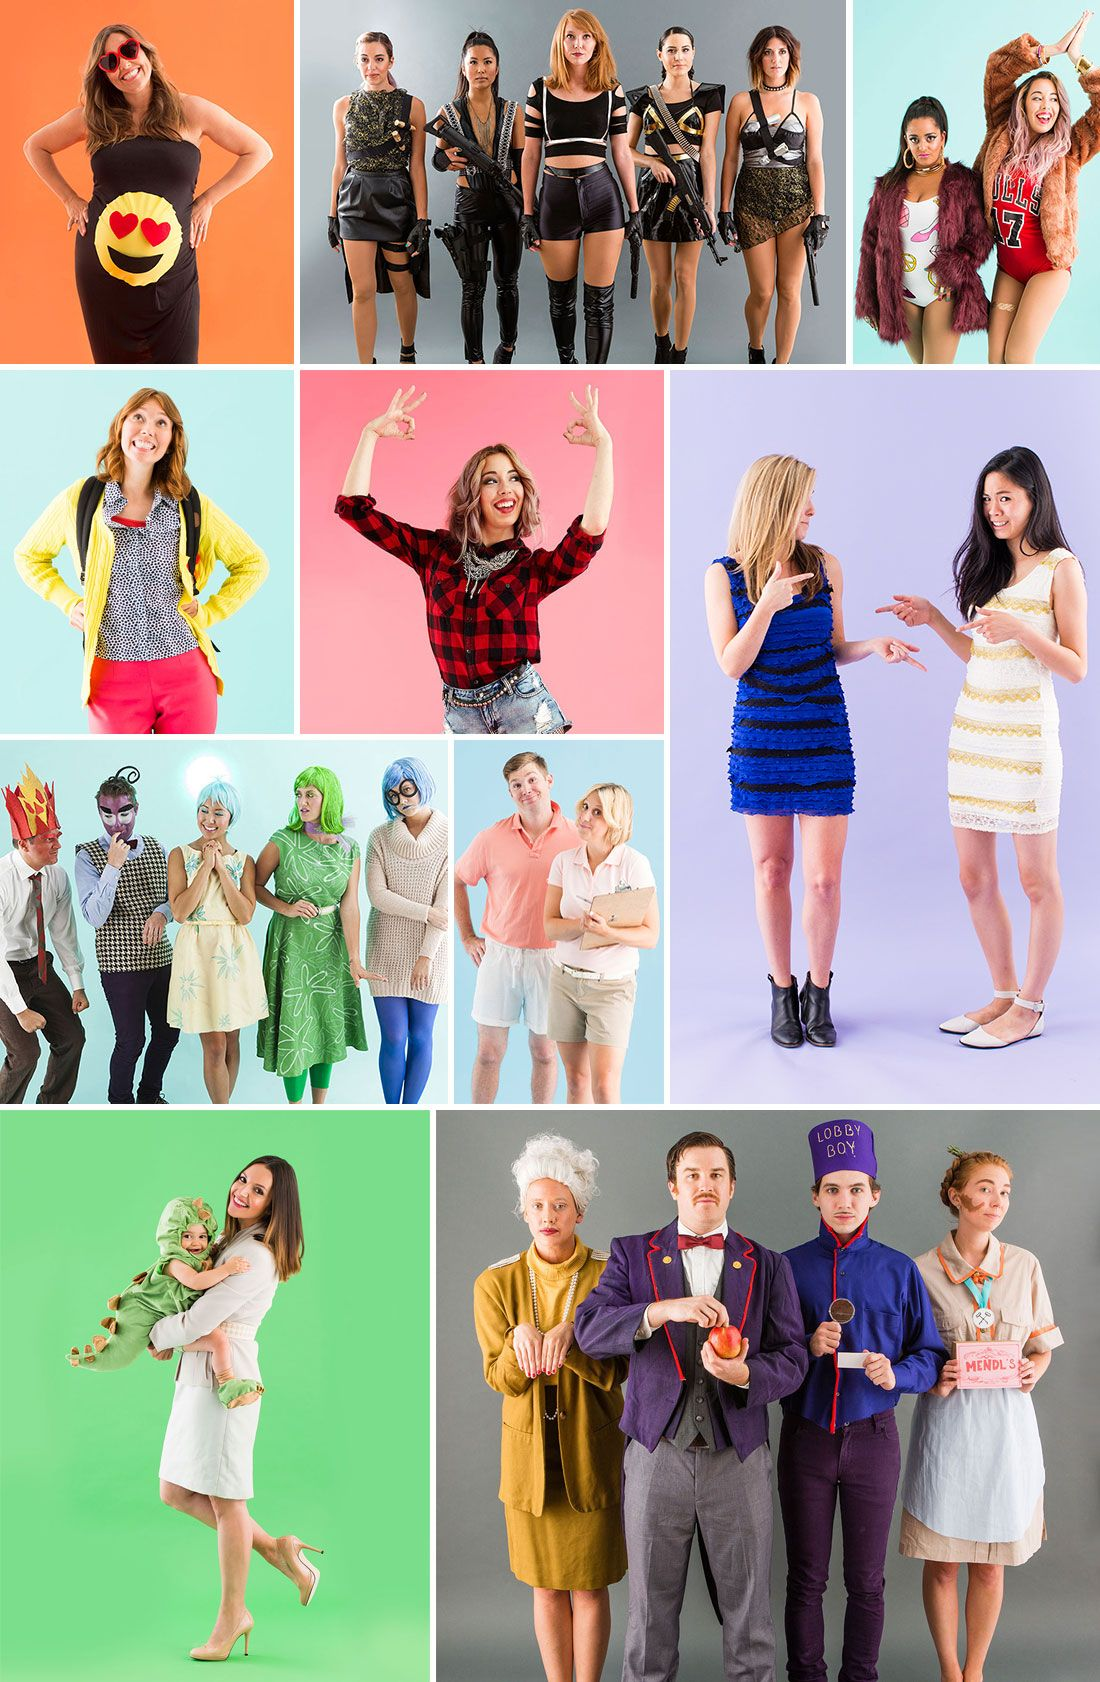 10 diy costumes inspired by pop culture moments of 2015 - Halloween Pop Culture